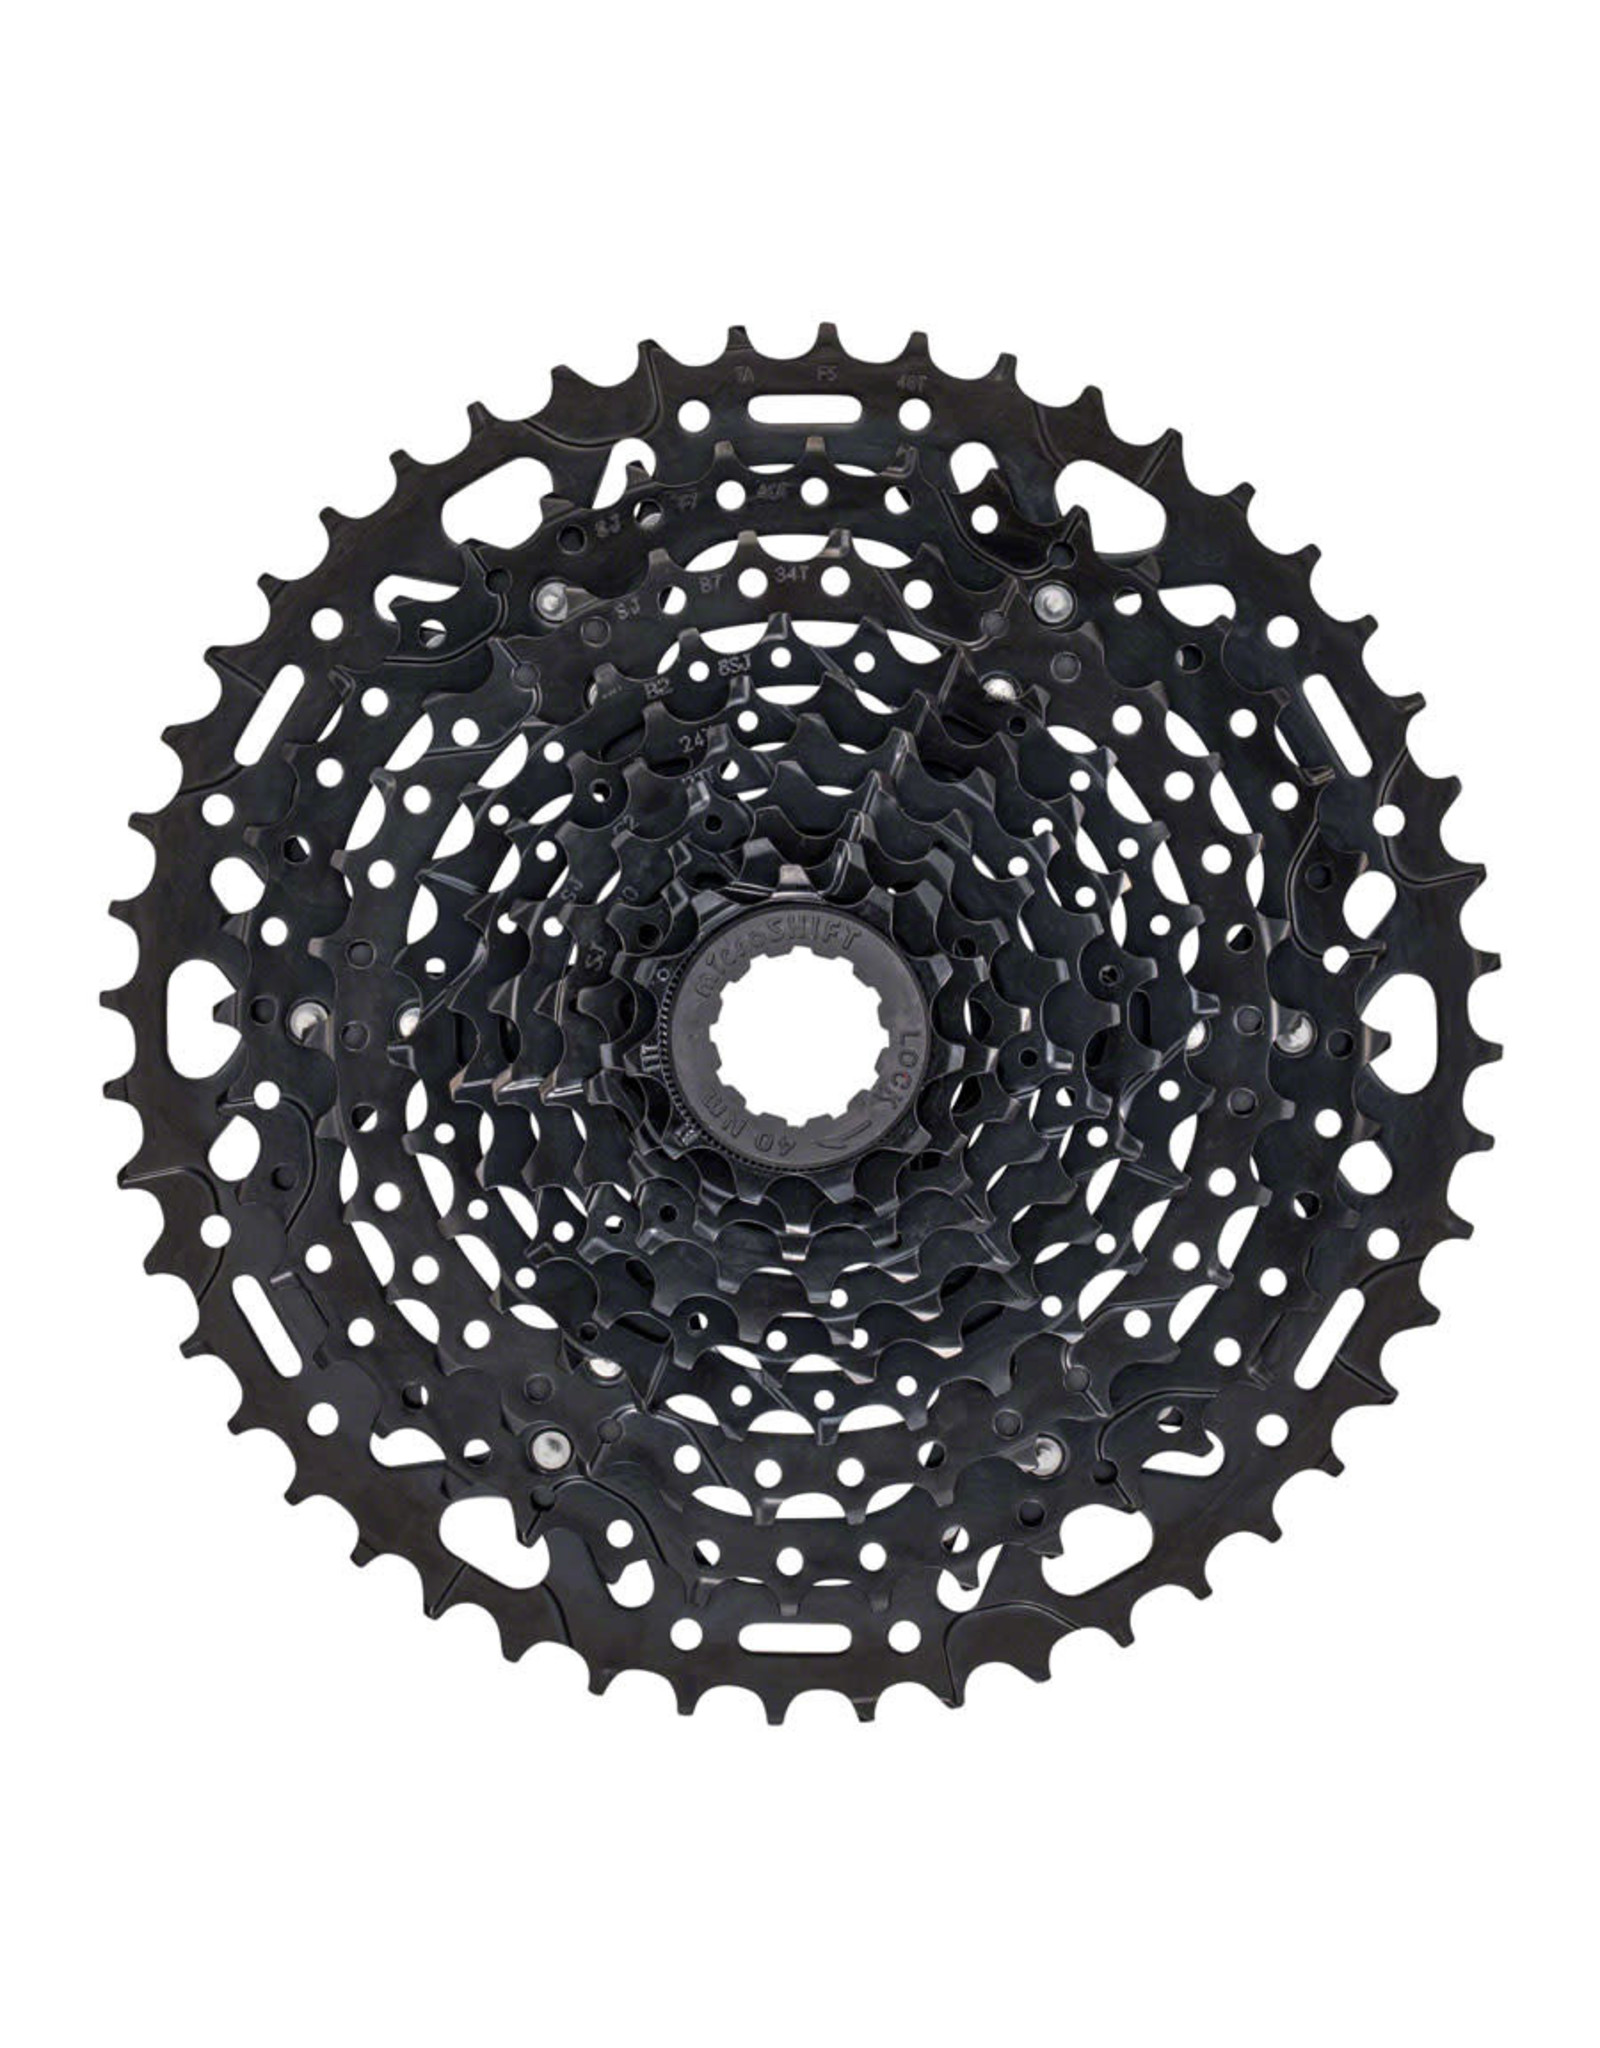 microSHIFT microSHIFT ADVENT X Cassette - 10 Speed, 11-48T, ED Black, Hardened Steel Cogs